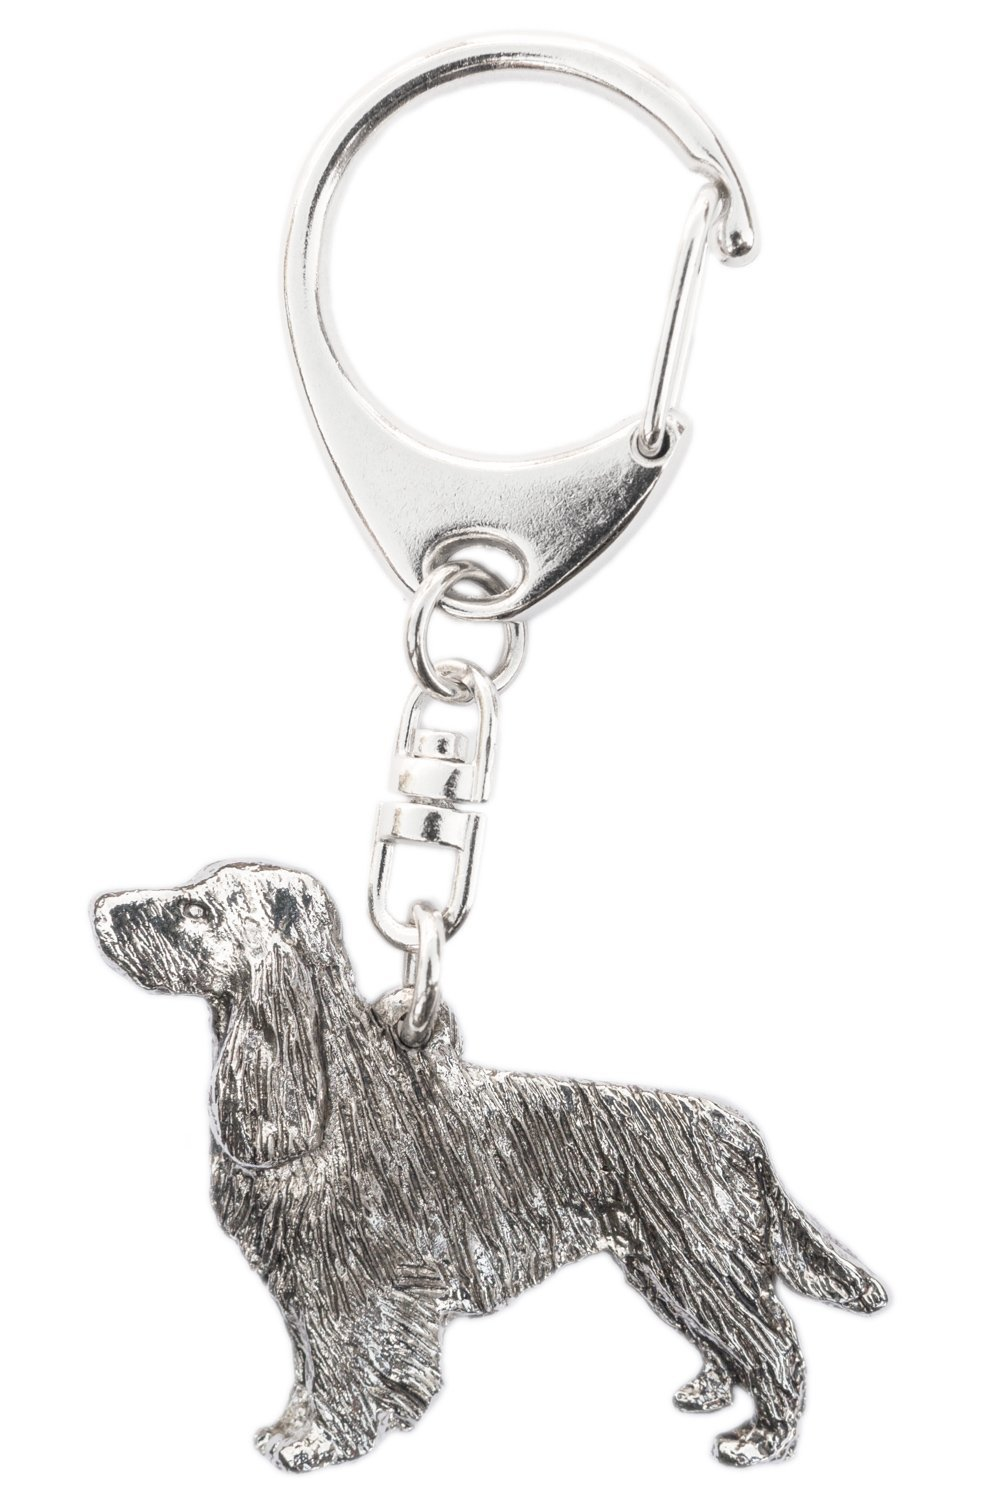 Silver Plated Brooch with tail English Springer Spaniel